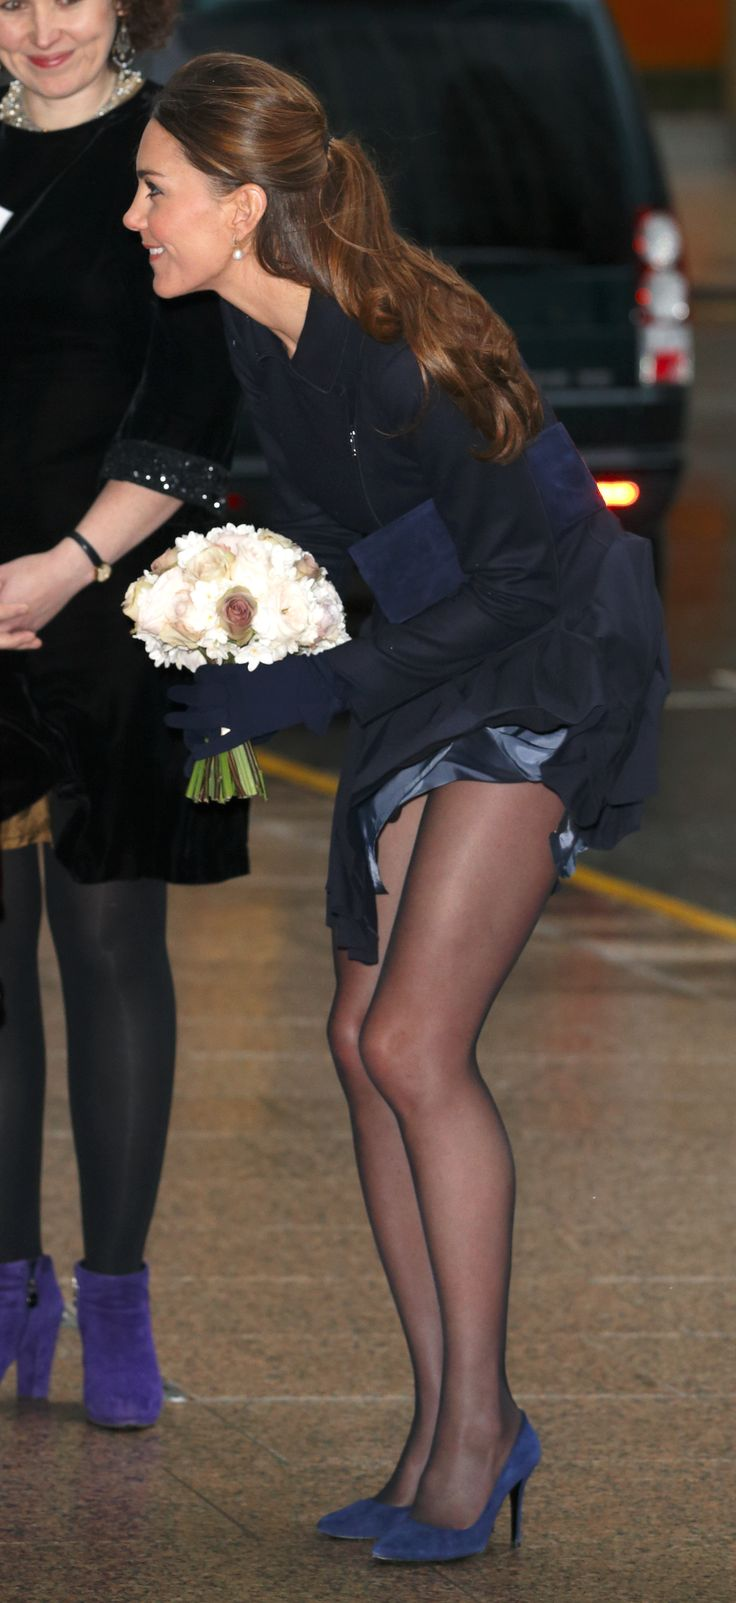 Kate Middleton attending an event in 2013   - Cosmopolitan.com